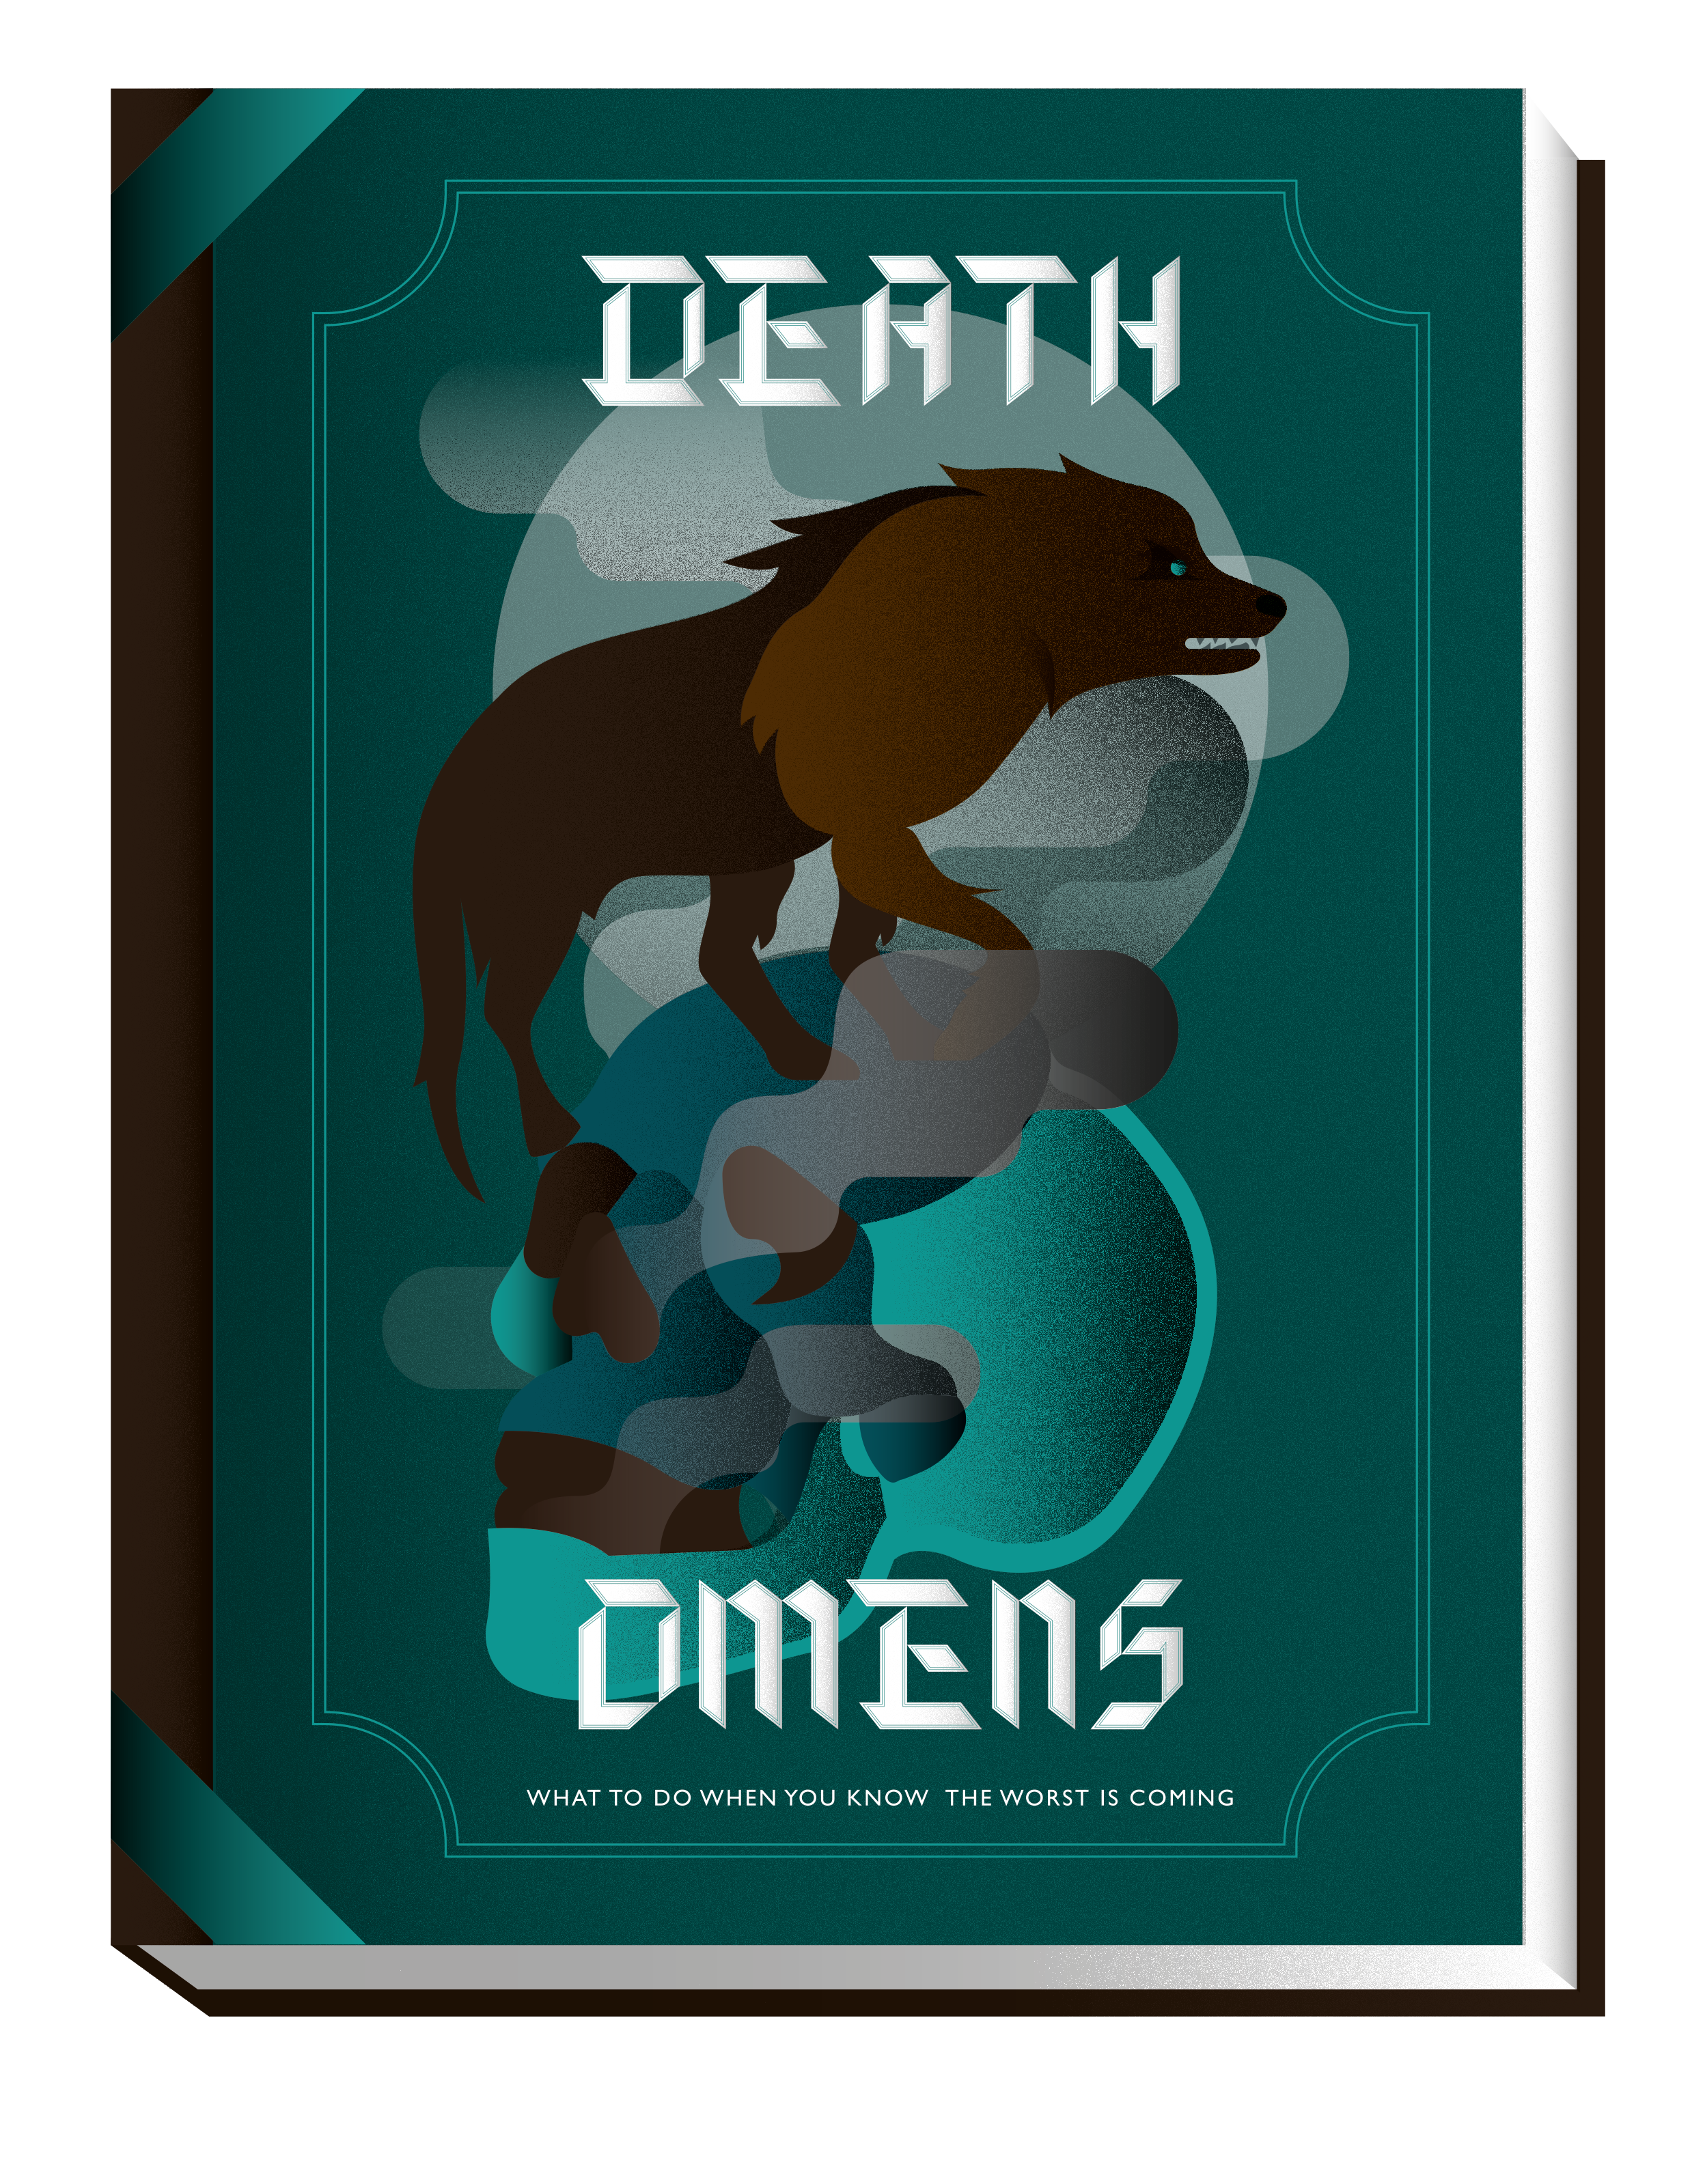 Death Omens: What to Do When You Know the Worst is Coming